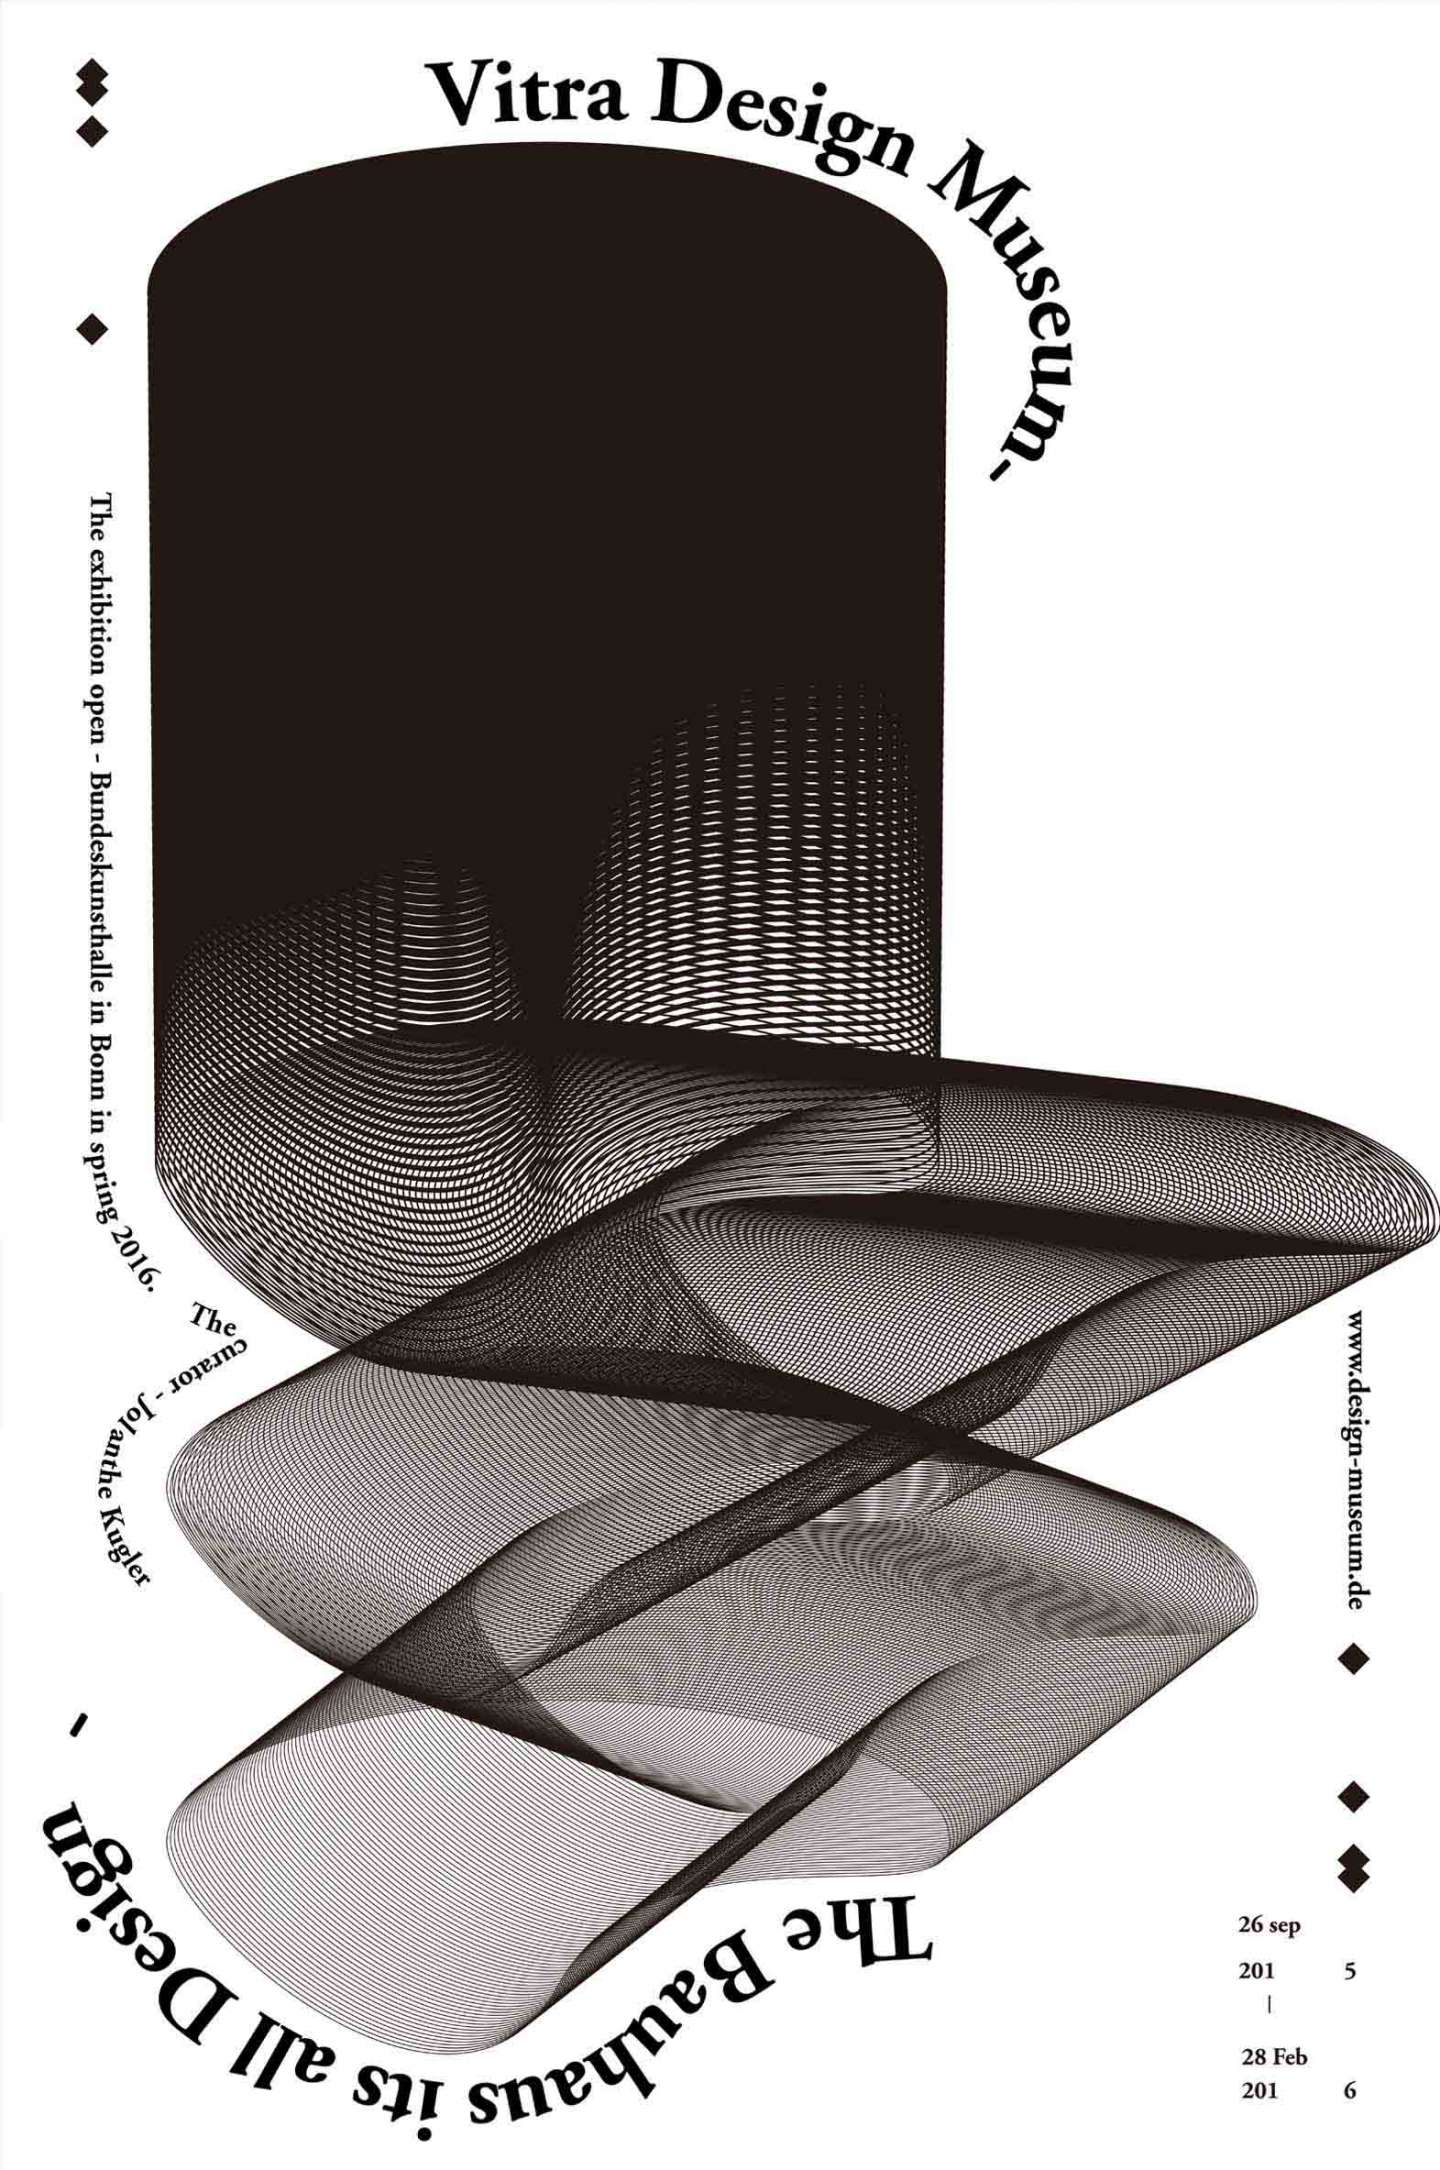 Vitra Chair Poster Vitra Design Museum By Eunsun Park Sva Design